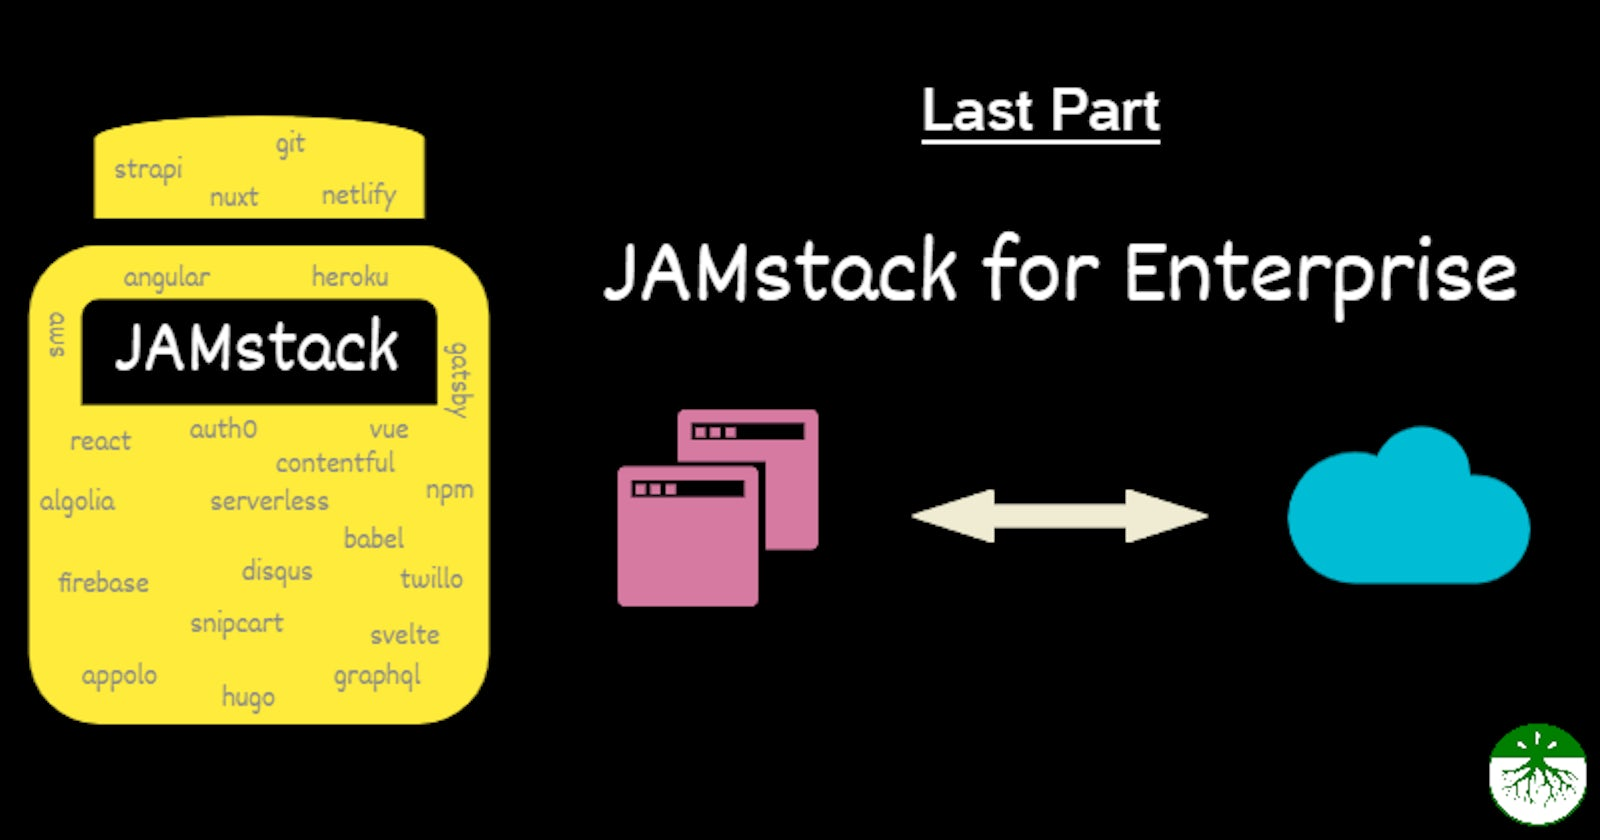 How to use JAMstack with the server-side and enterprise app